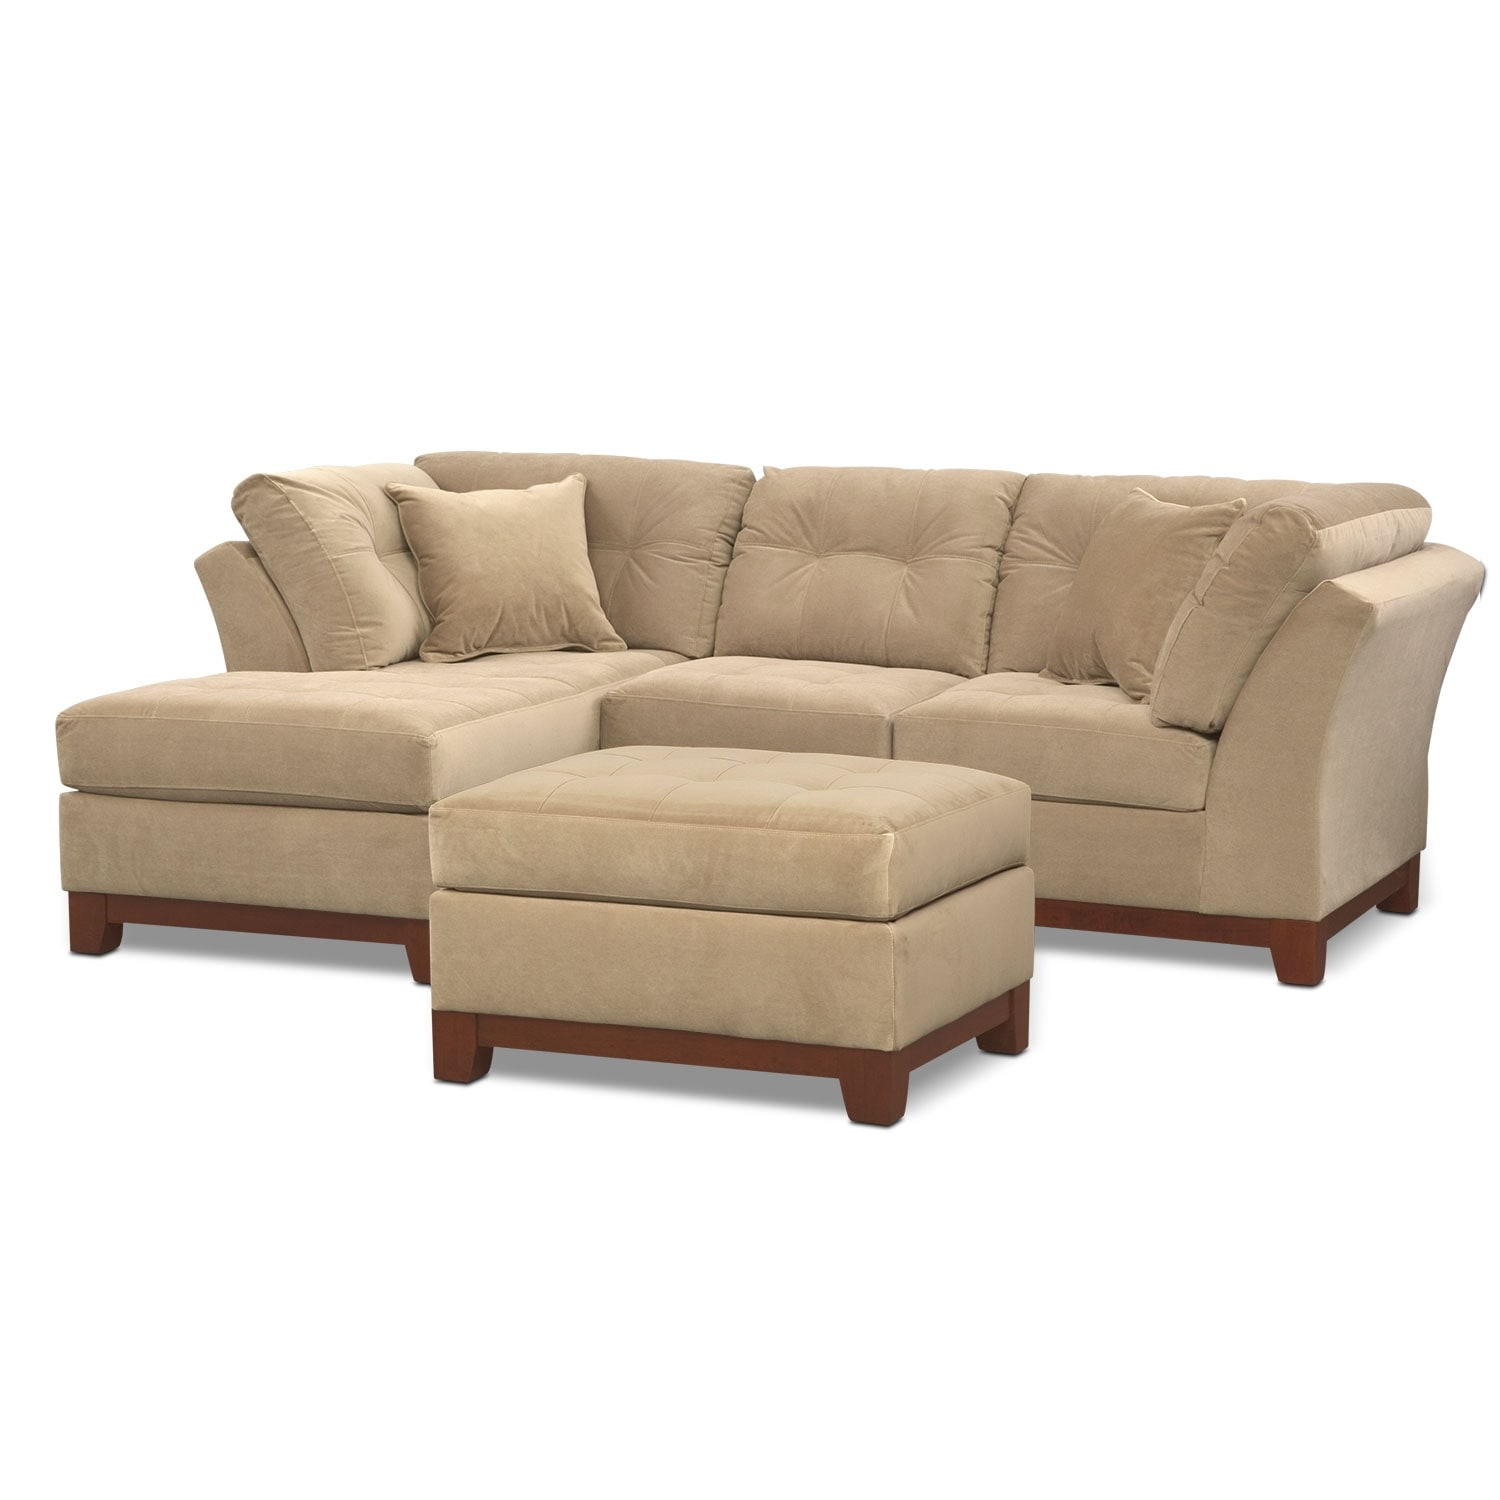 Living Room Furniture - Solace Cocoa II 2 Pc. Sectional (Alternate) and Ottoman